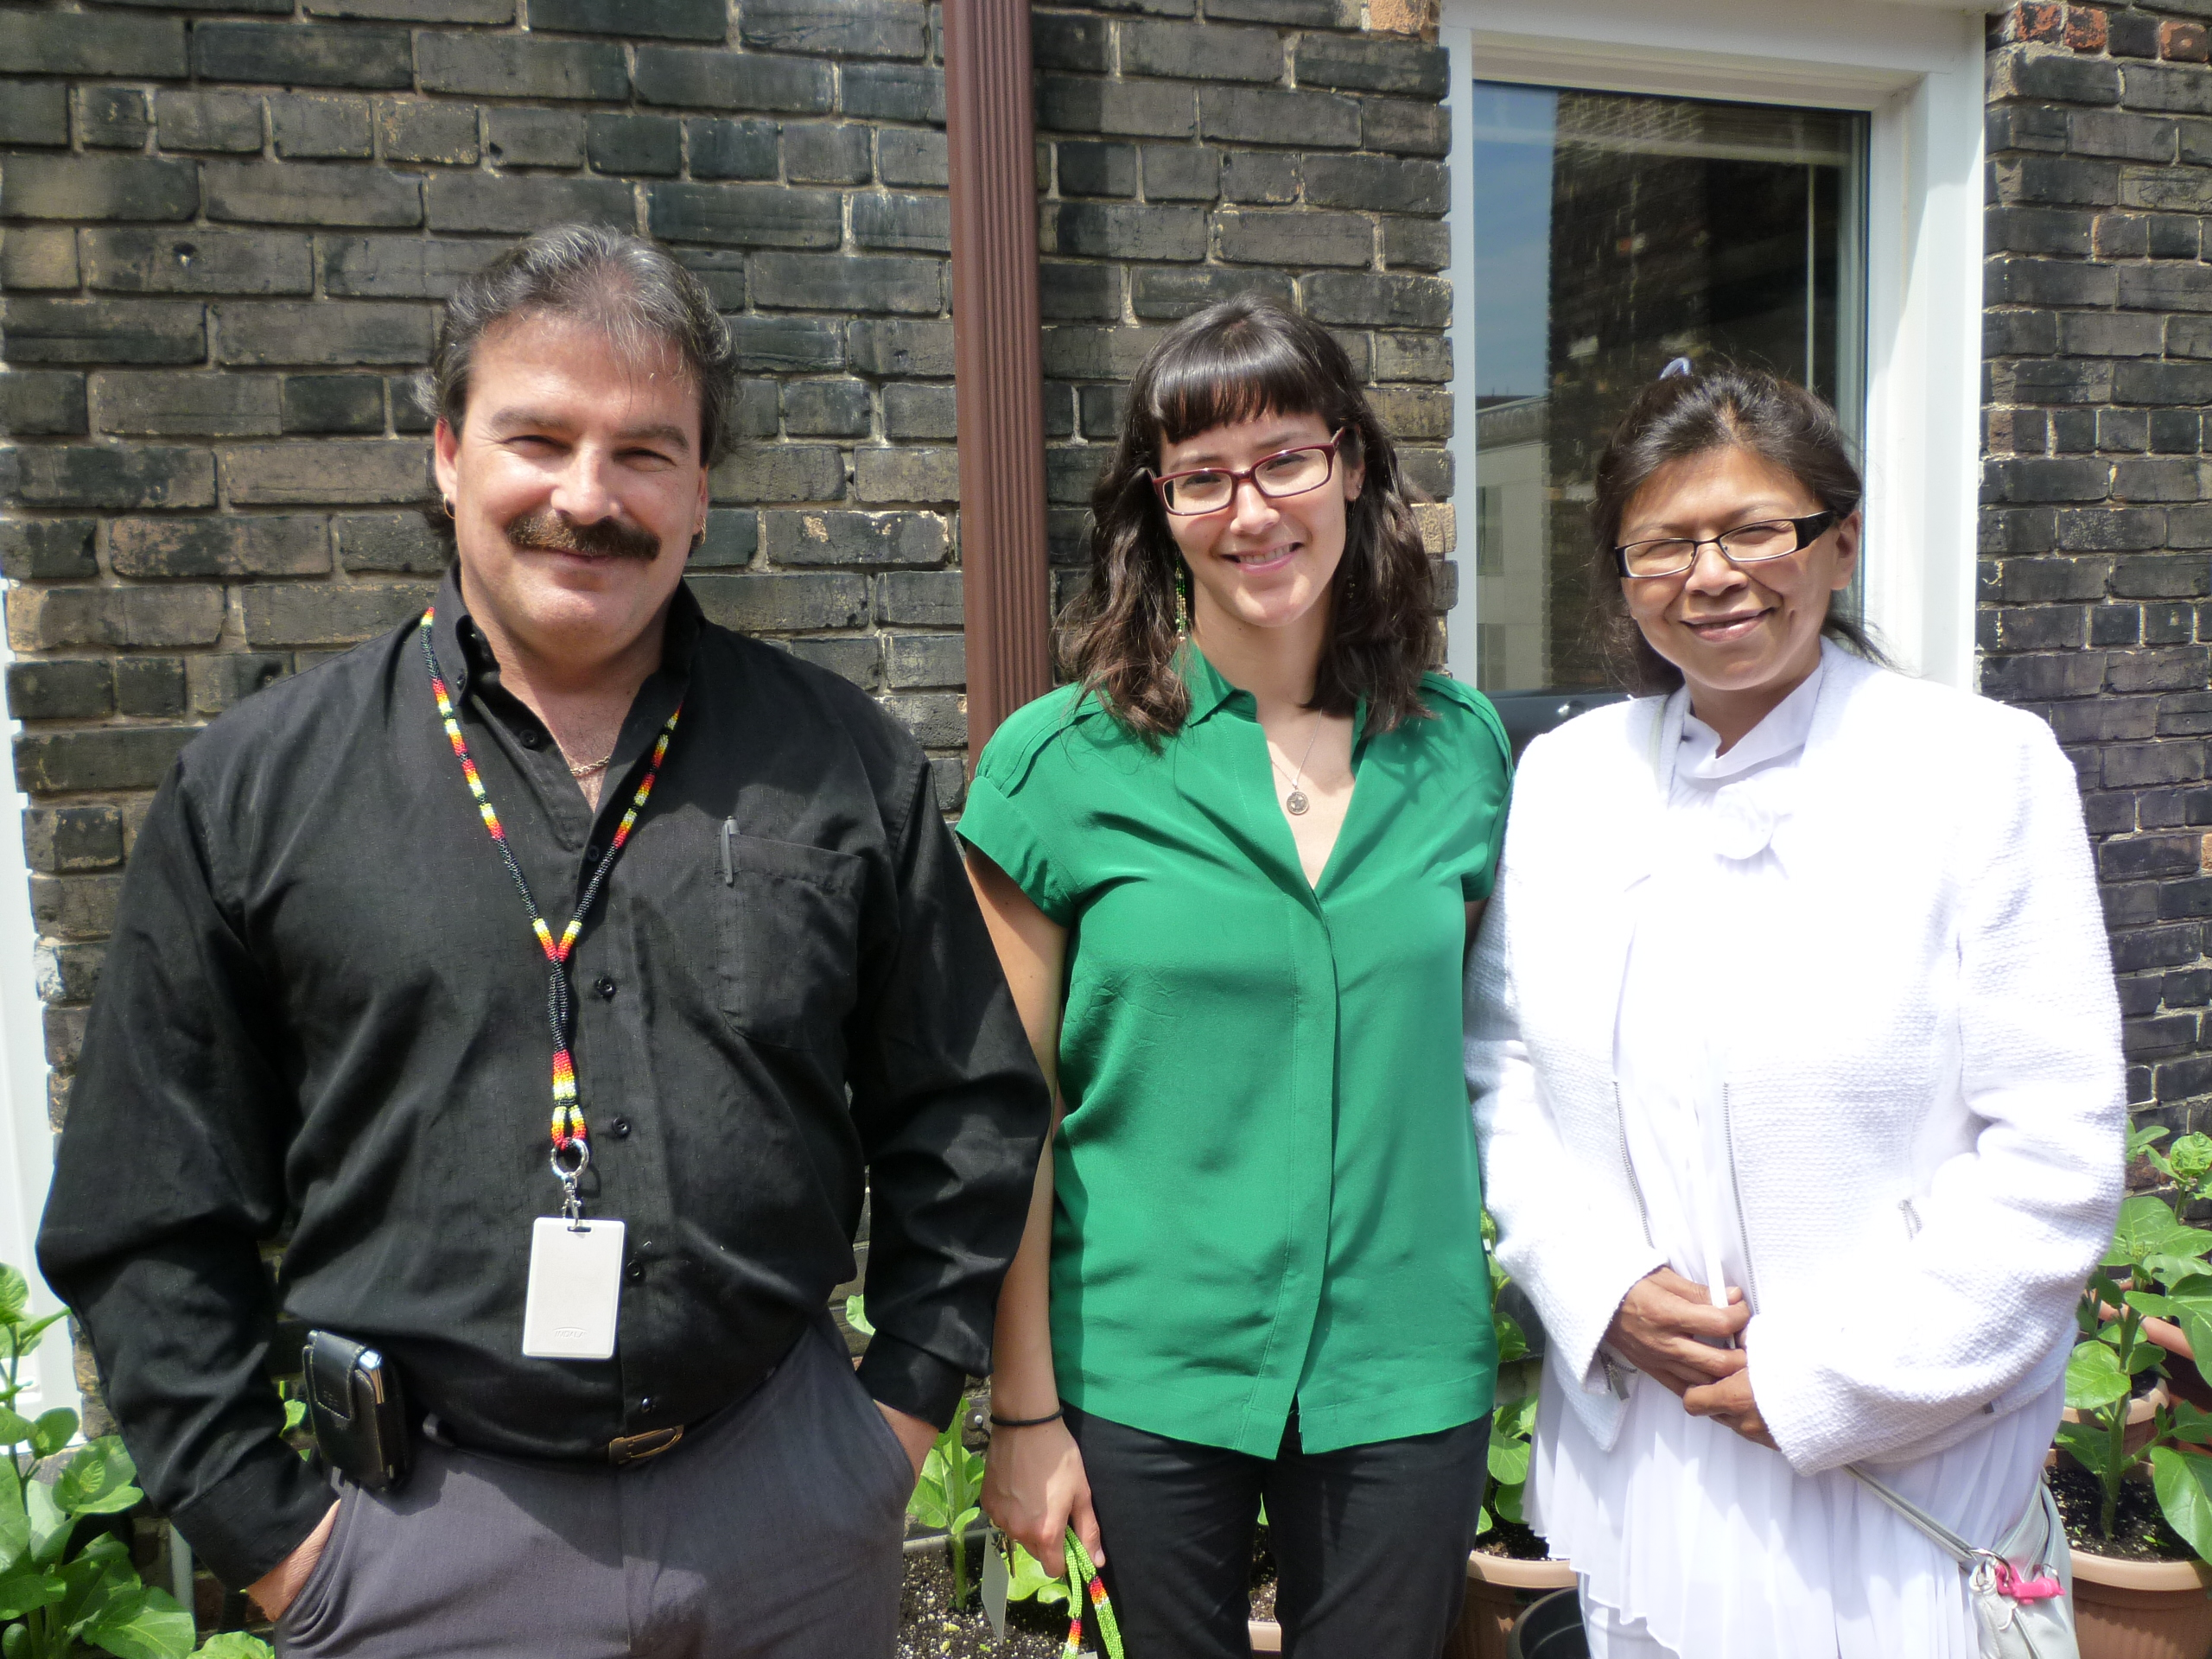 Chester Langille, in a black shirt, Candice Day in a green shirt and Georgina Franki, all in white.